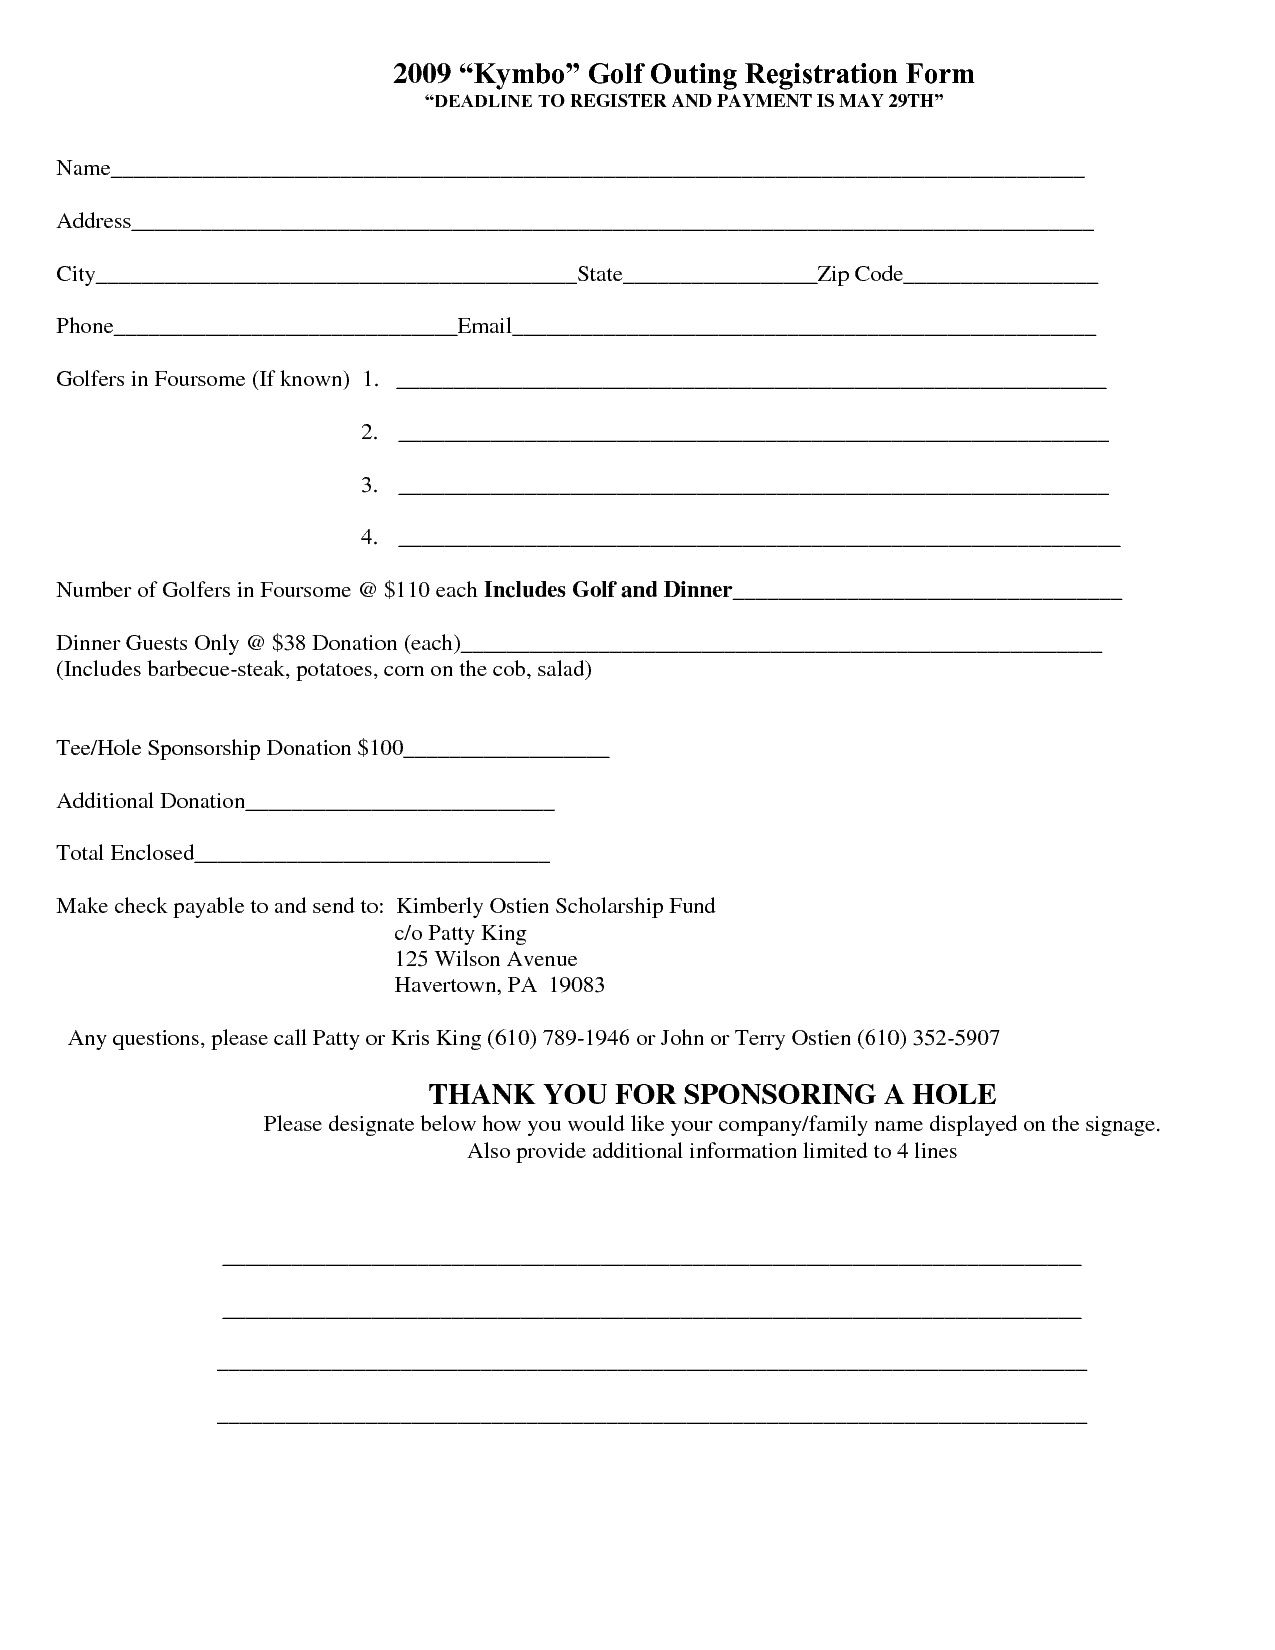 008 Awful Registration Form Template Word Idea  Conference FreeFull